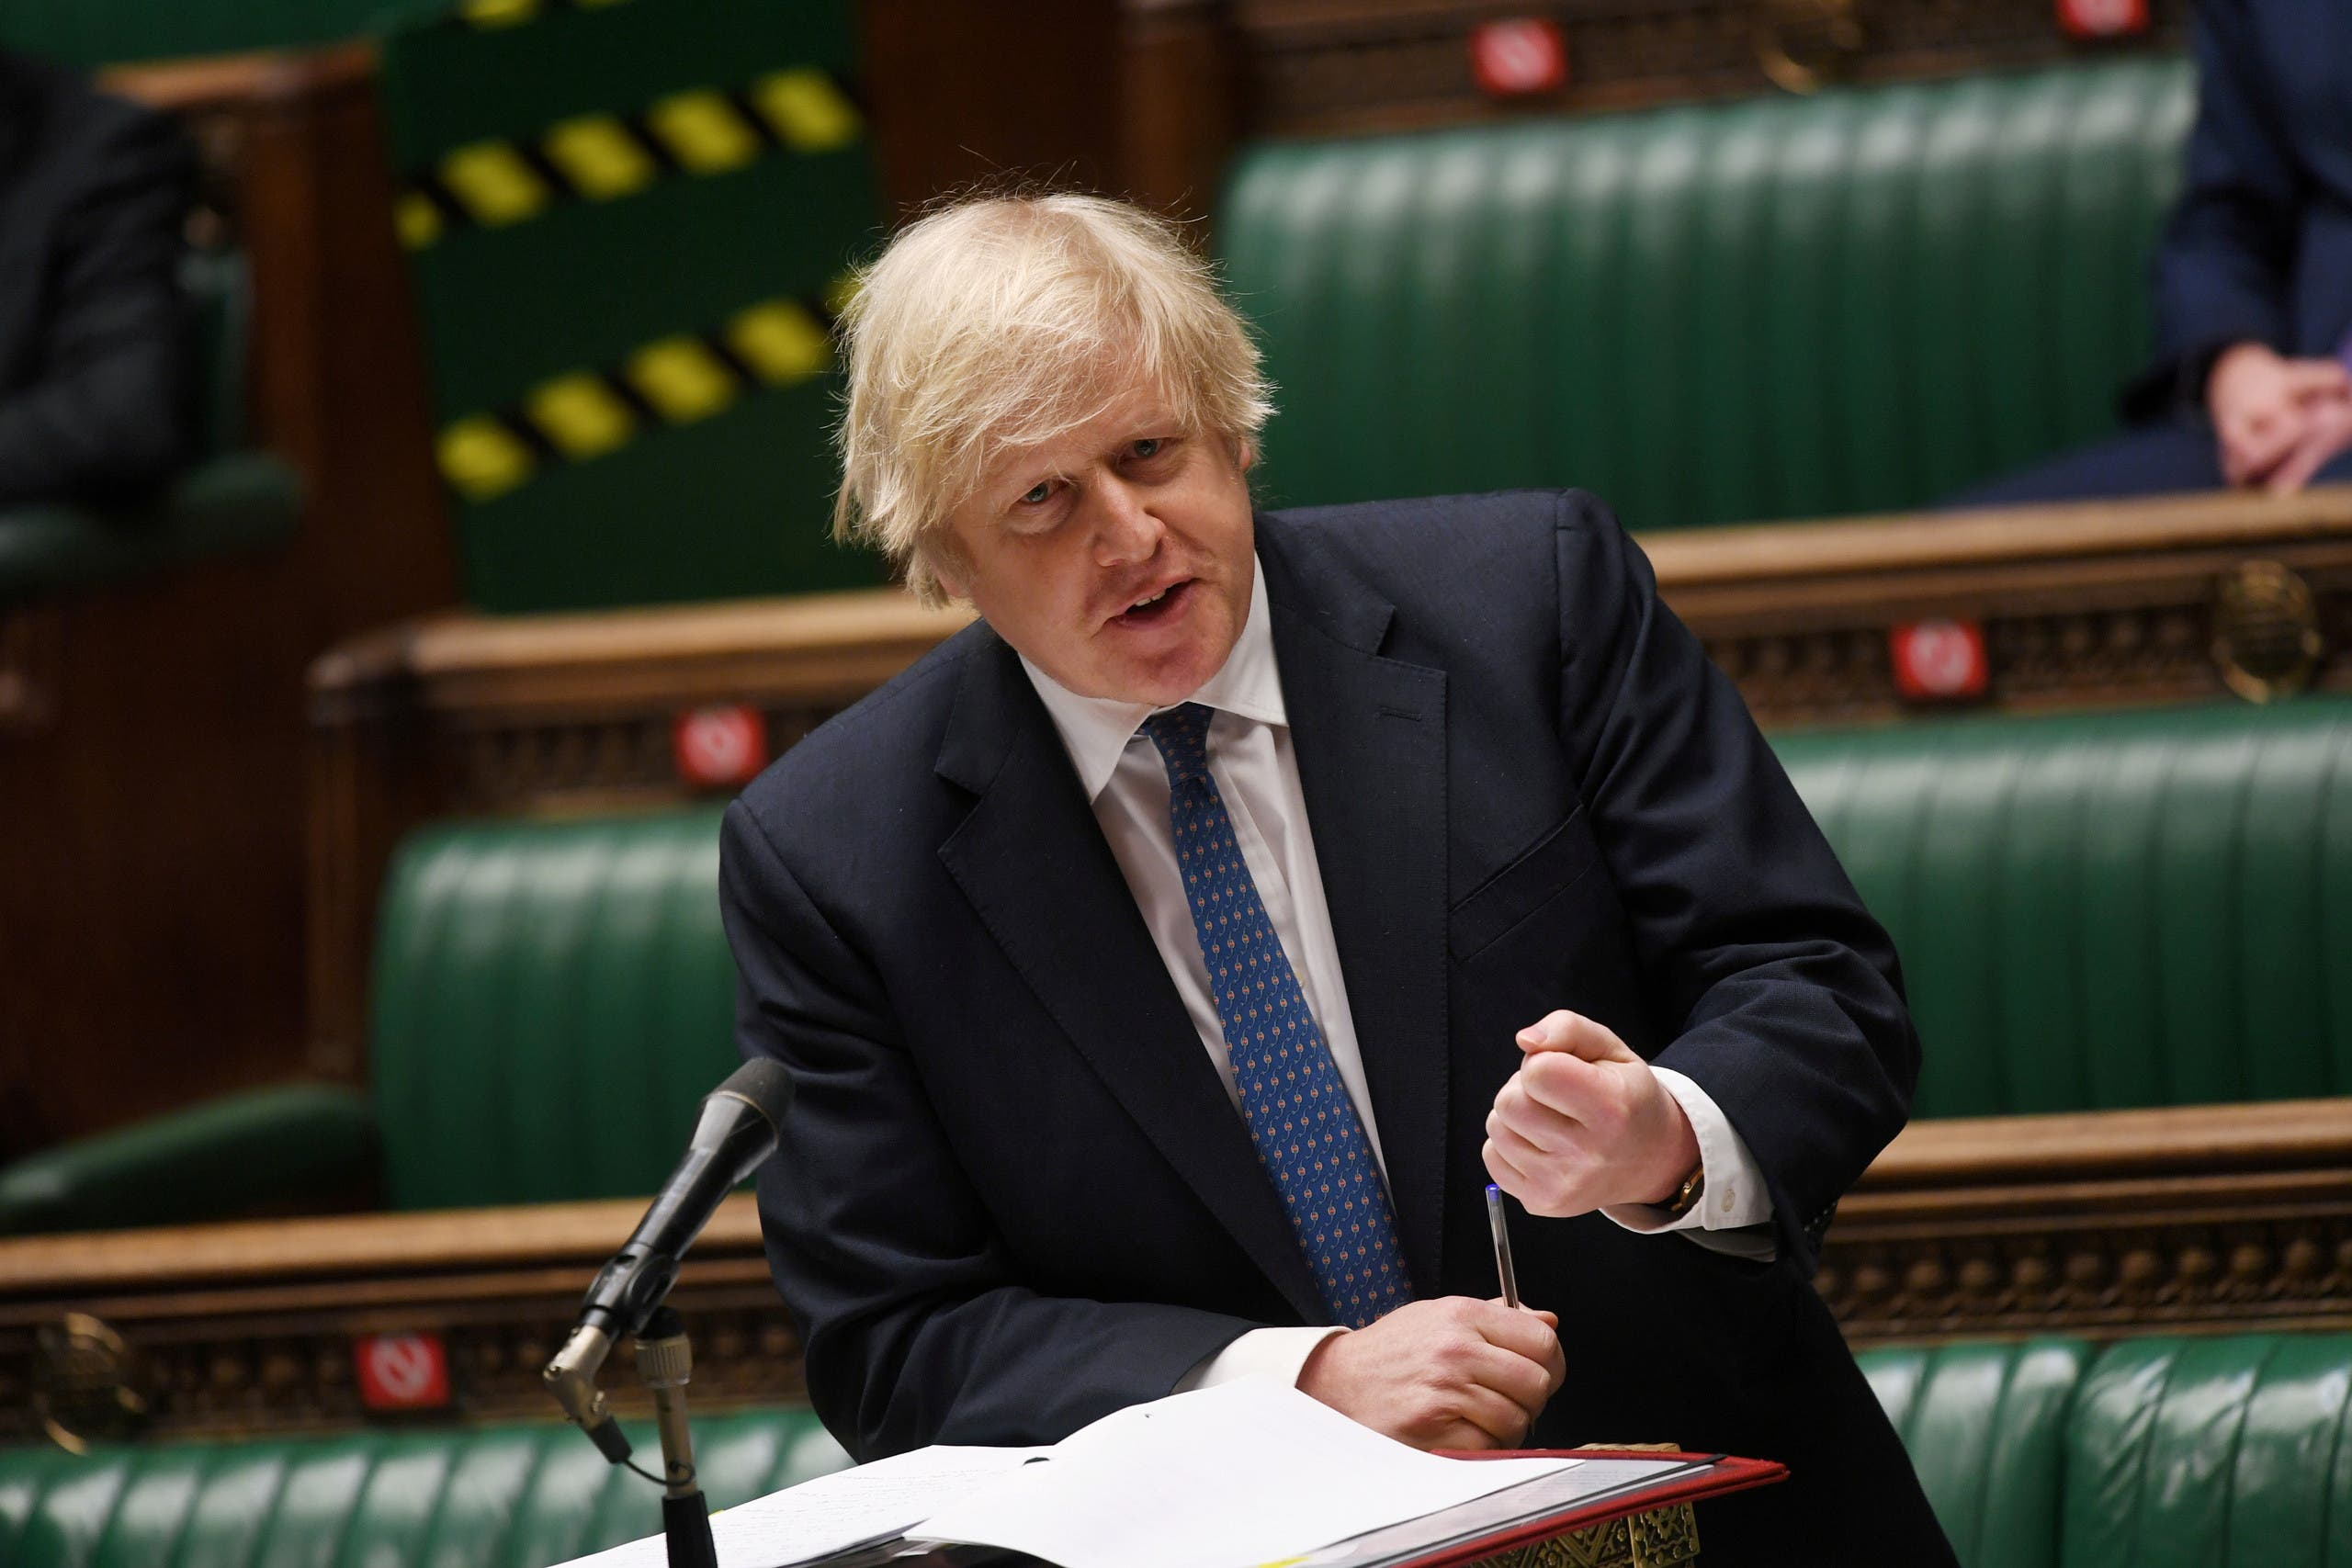 A file photo shows British Prime Minister Boris Johnson speaks during the weekly question time debate at the House of Commons in London, Britain March 10, 2021. (UK Parliament/Jessica Taylor/Handout via Reuters)